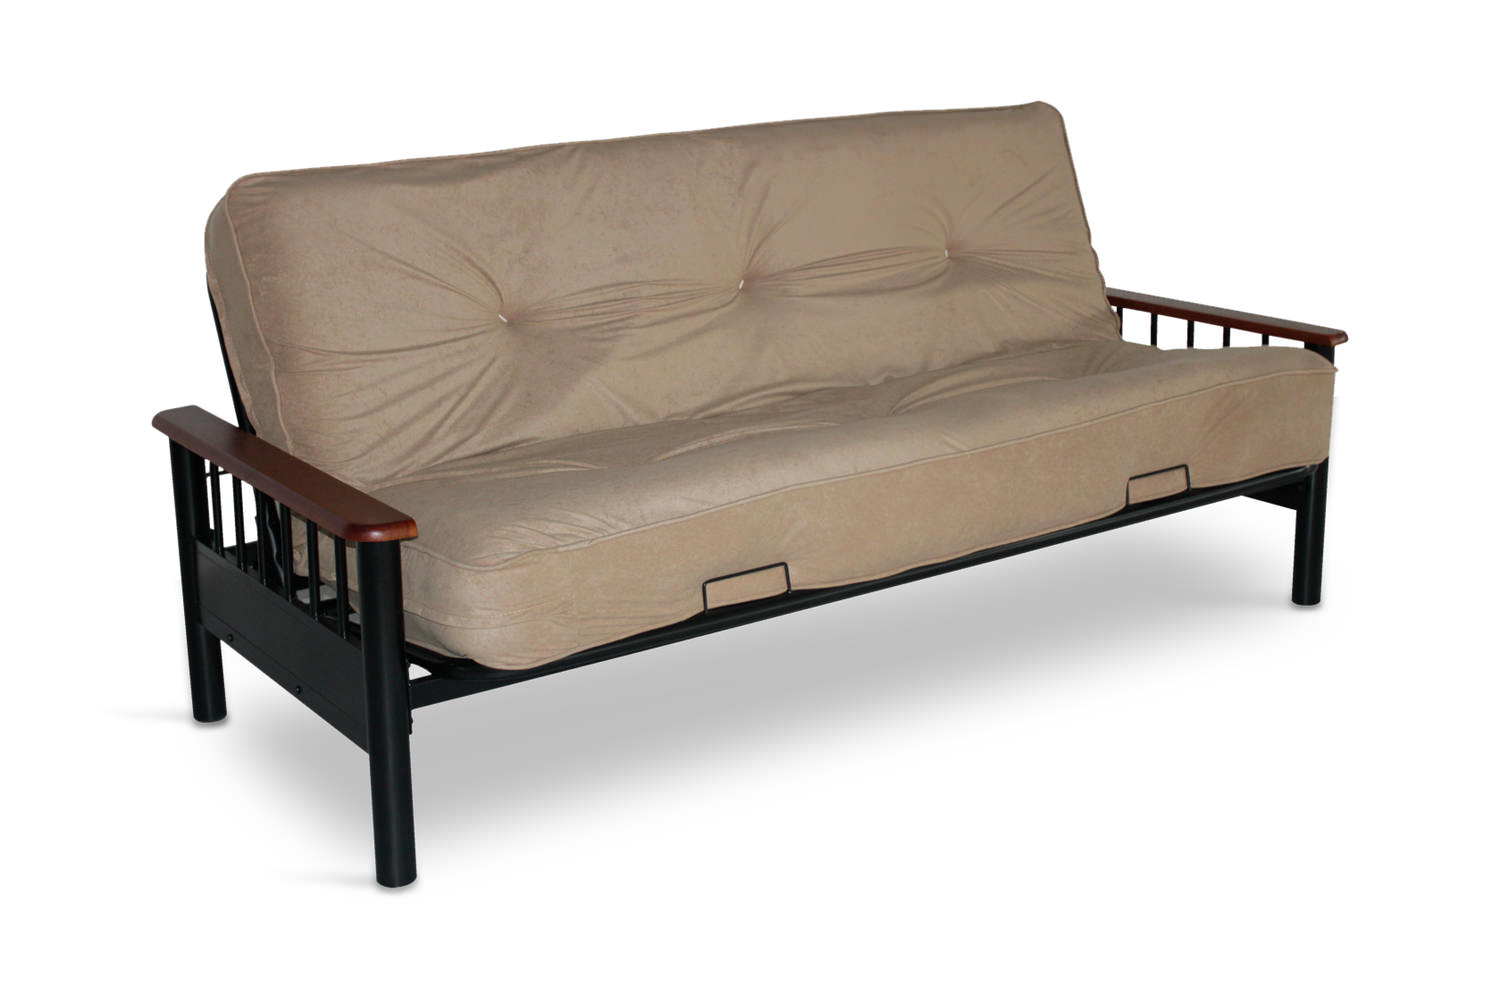 spacer bennett futon frame with innerspring futon mattress